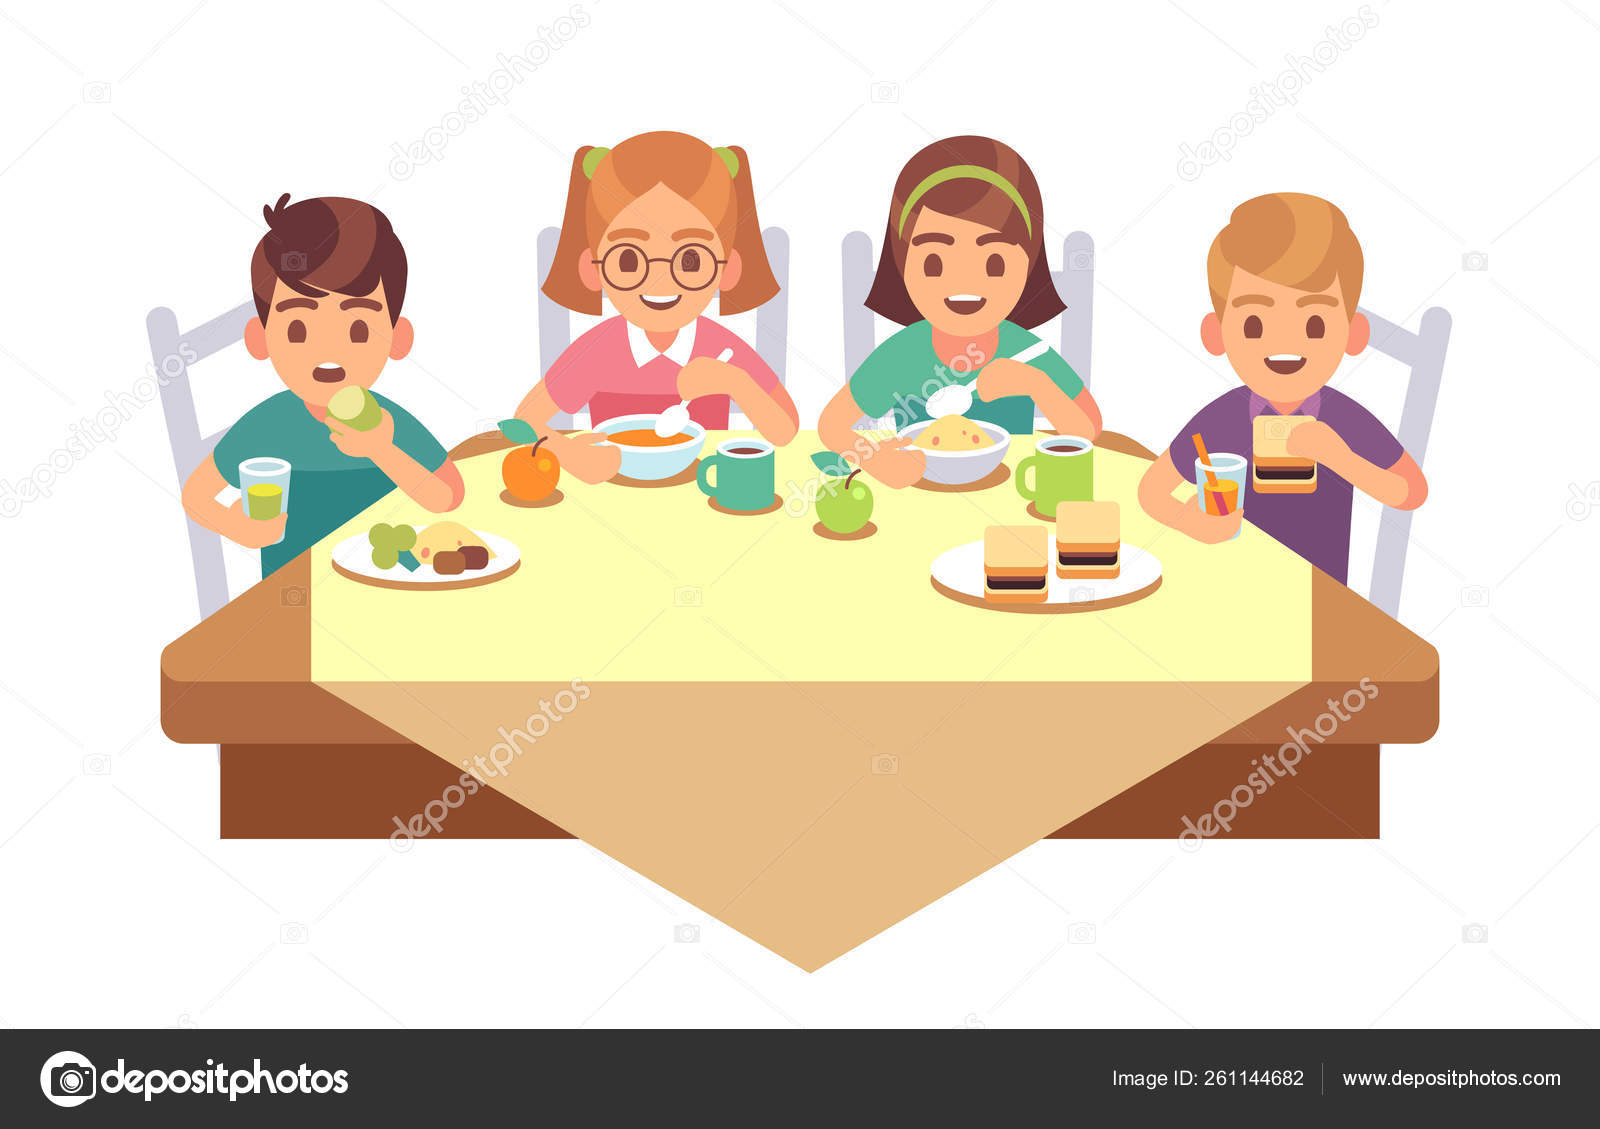 Images Eating Dinner Cartoon Kids Eat Together Children Eating Dinner Cafe Restaurant Happy Child Breakfast Lunch Fast Food Dining Friends Cartoon Vector Concept Stock Vector C Yummybuum 261144682